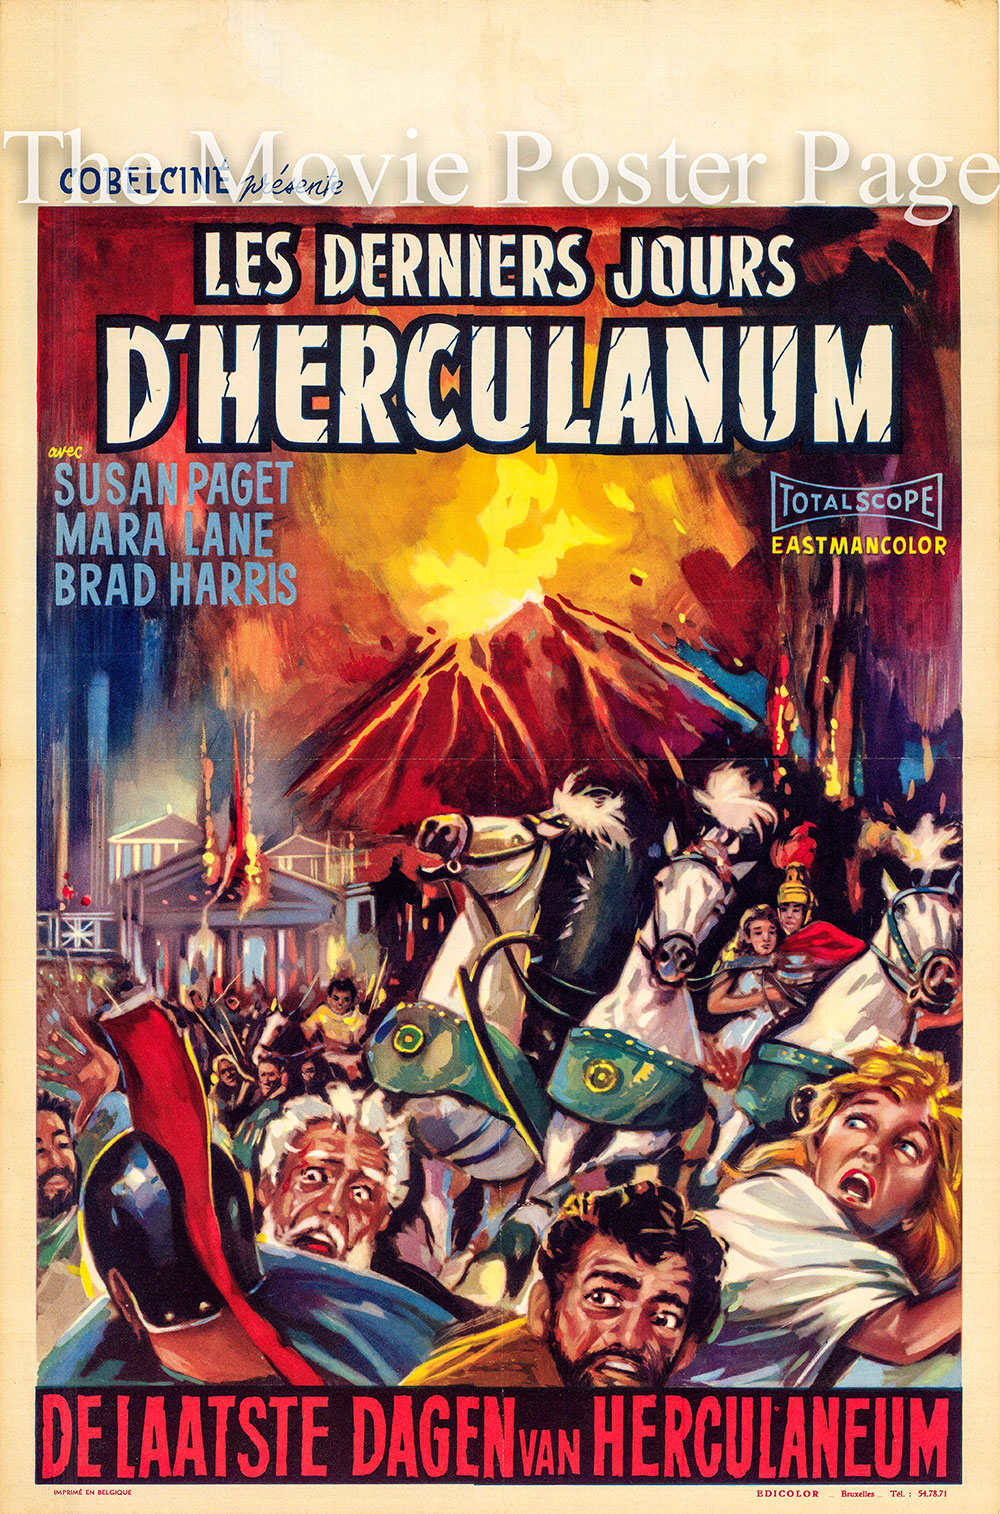 Pictured is a Beligian poster for the 1962 Gianfranco Parolini film The Destruction of Herculaneum starring Susan Paget as Livia